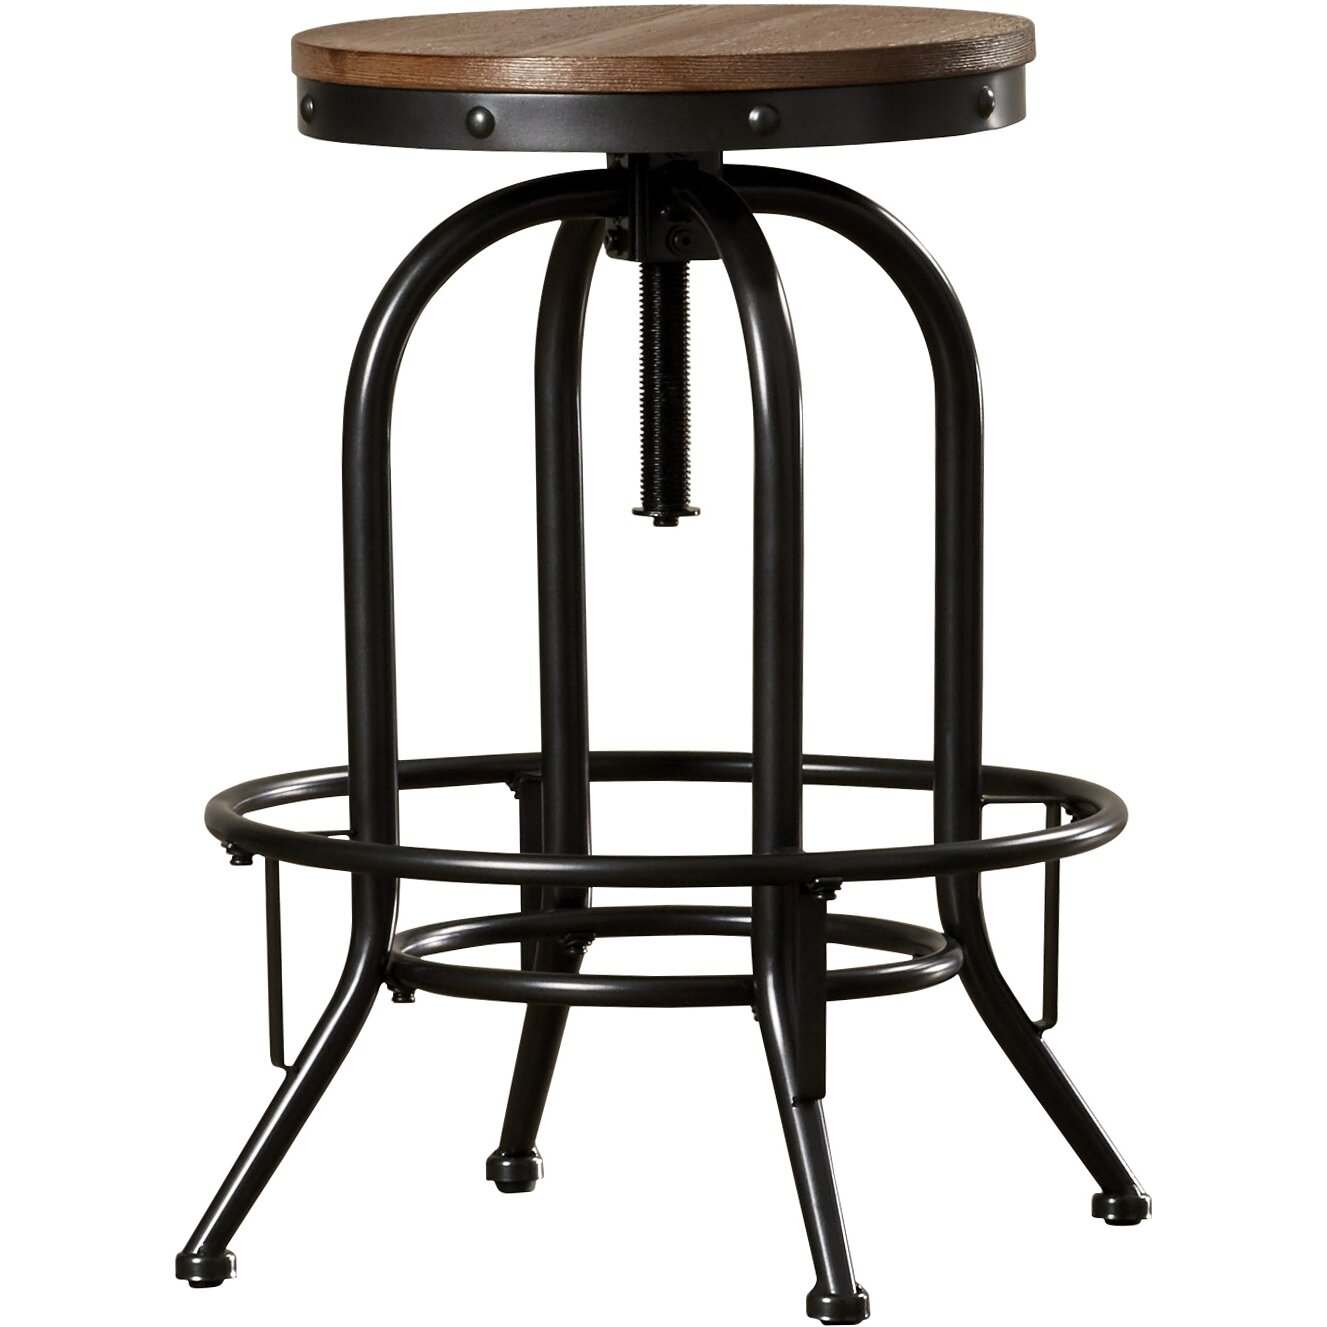 Trent Austin Design Carmel Adjustable Height Swivel Bar  : Pinnadel Adjustable Height Swivel Bar Stool TADN2834 from www.wayfair.com size 1327 x 1327 jpeg 158kB